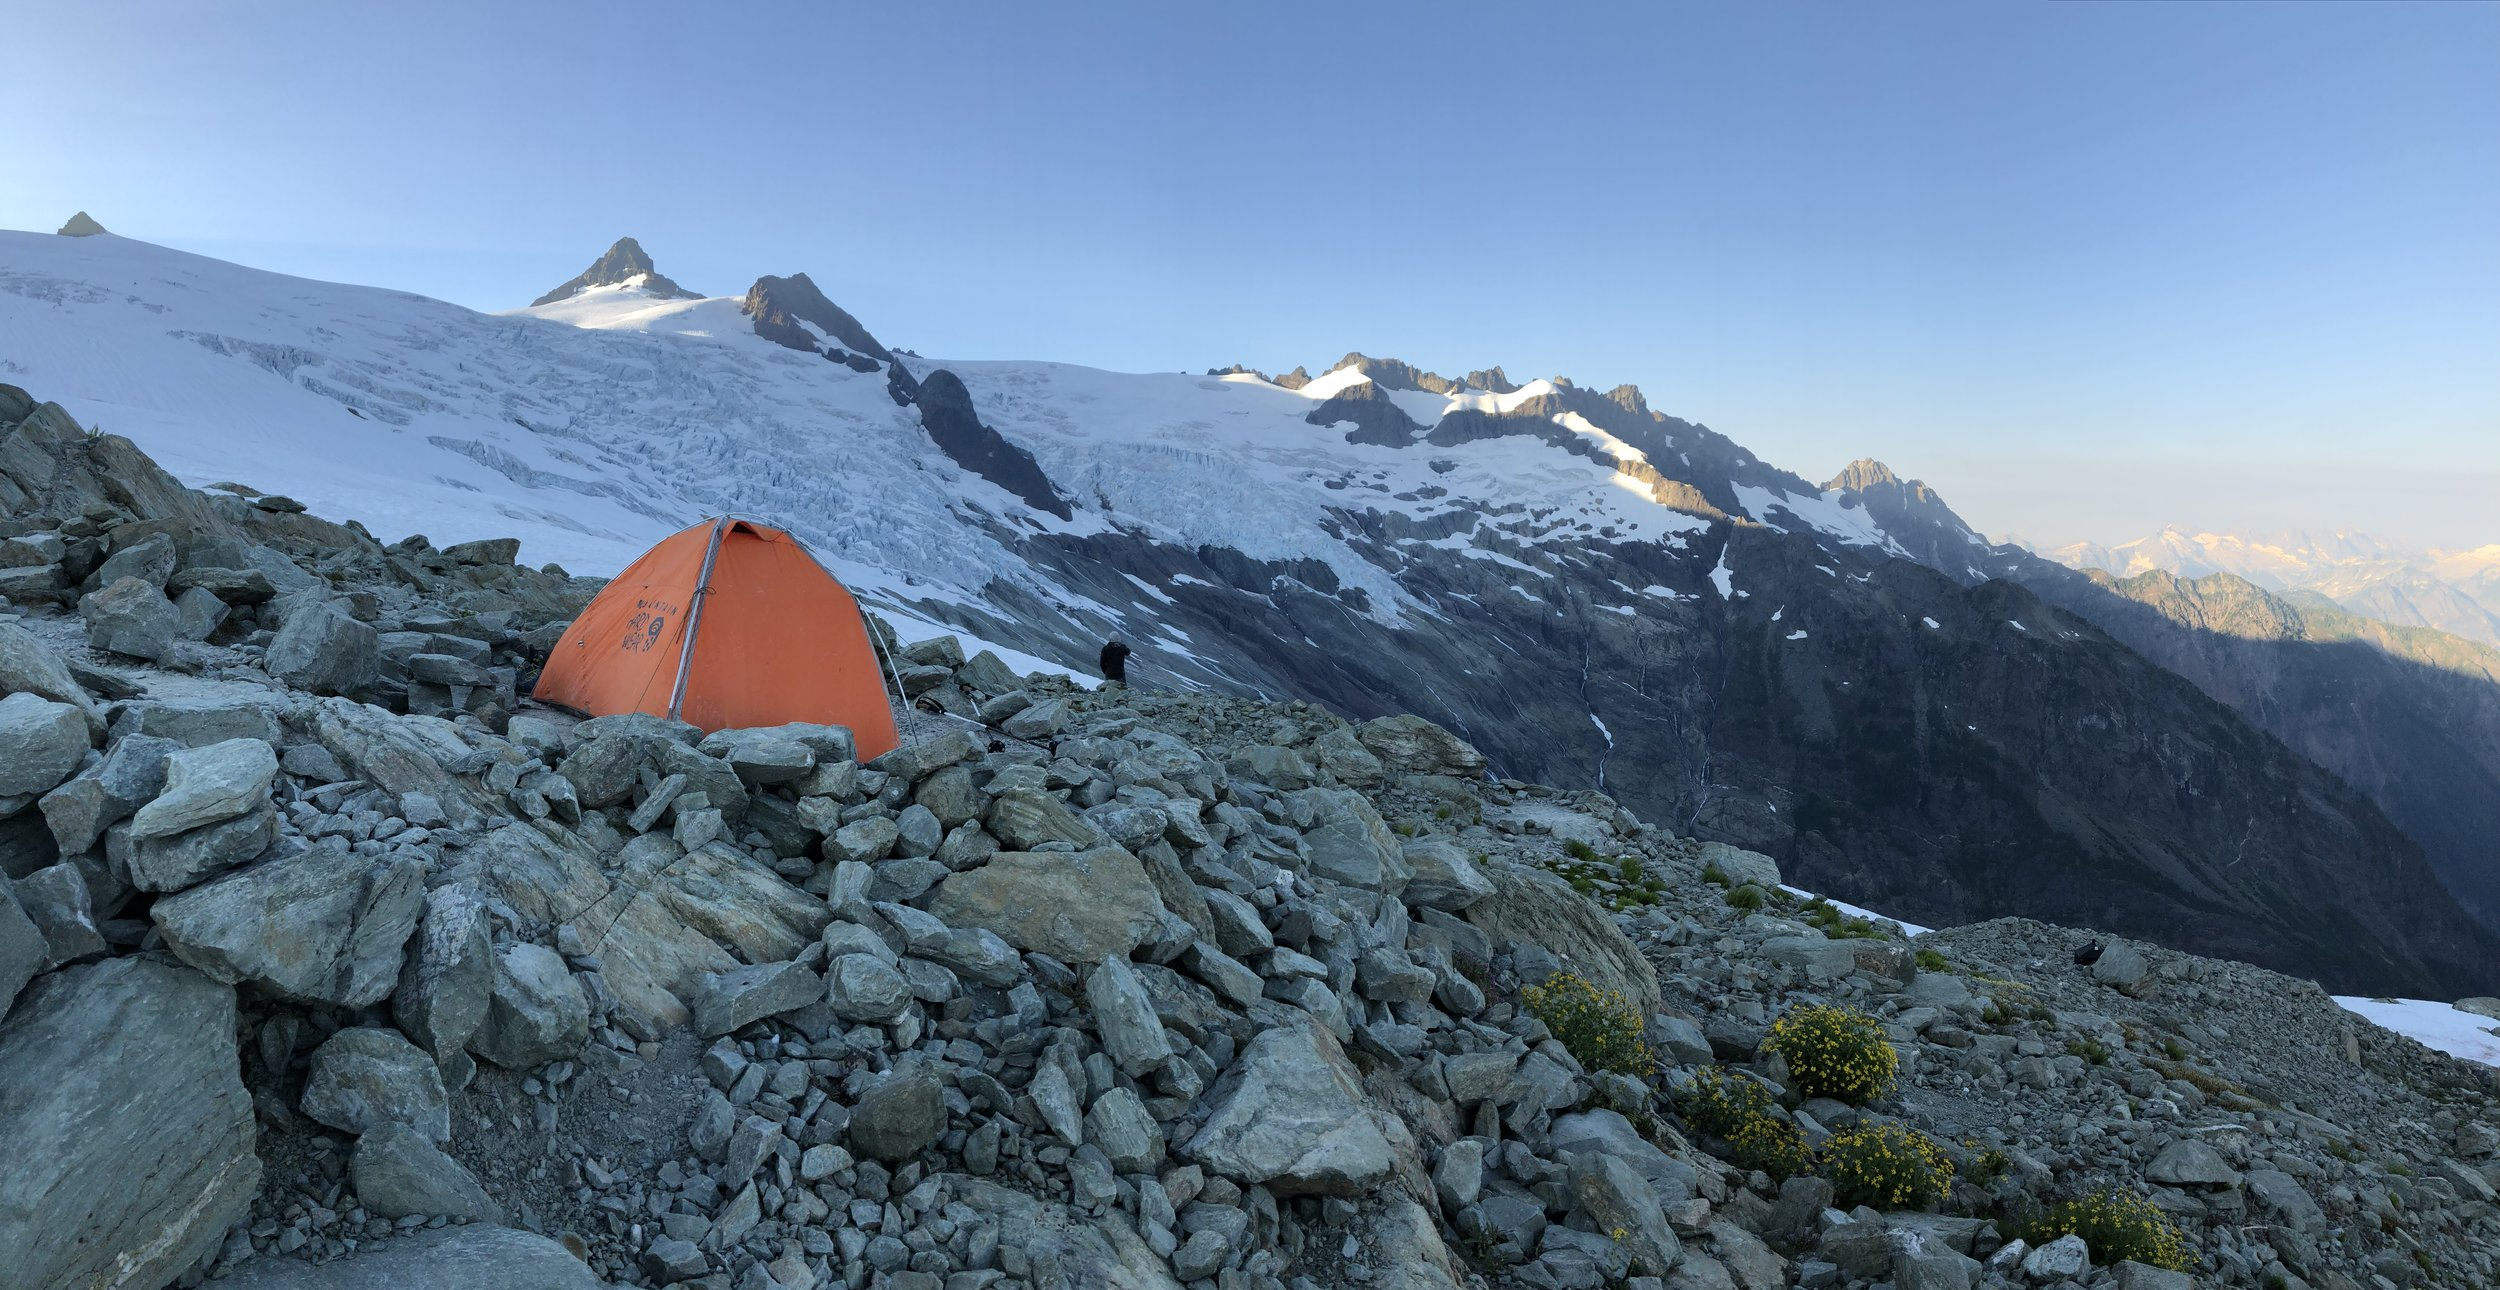 Mount Shuksan from high camp on the Sulphide Glacier.